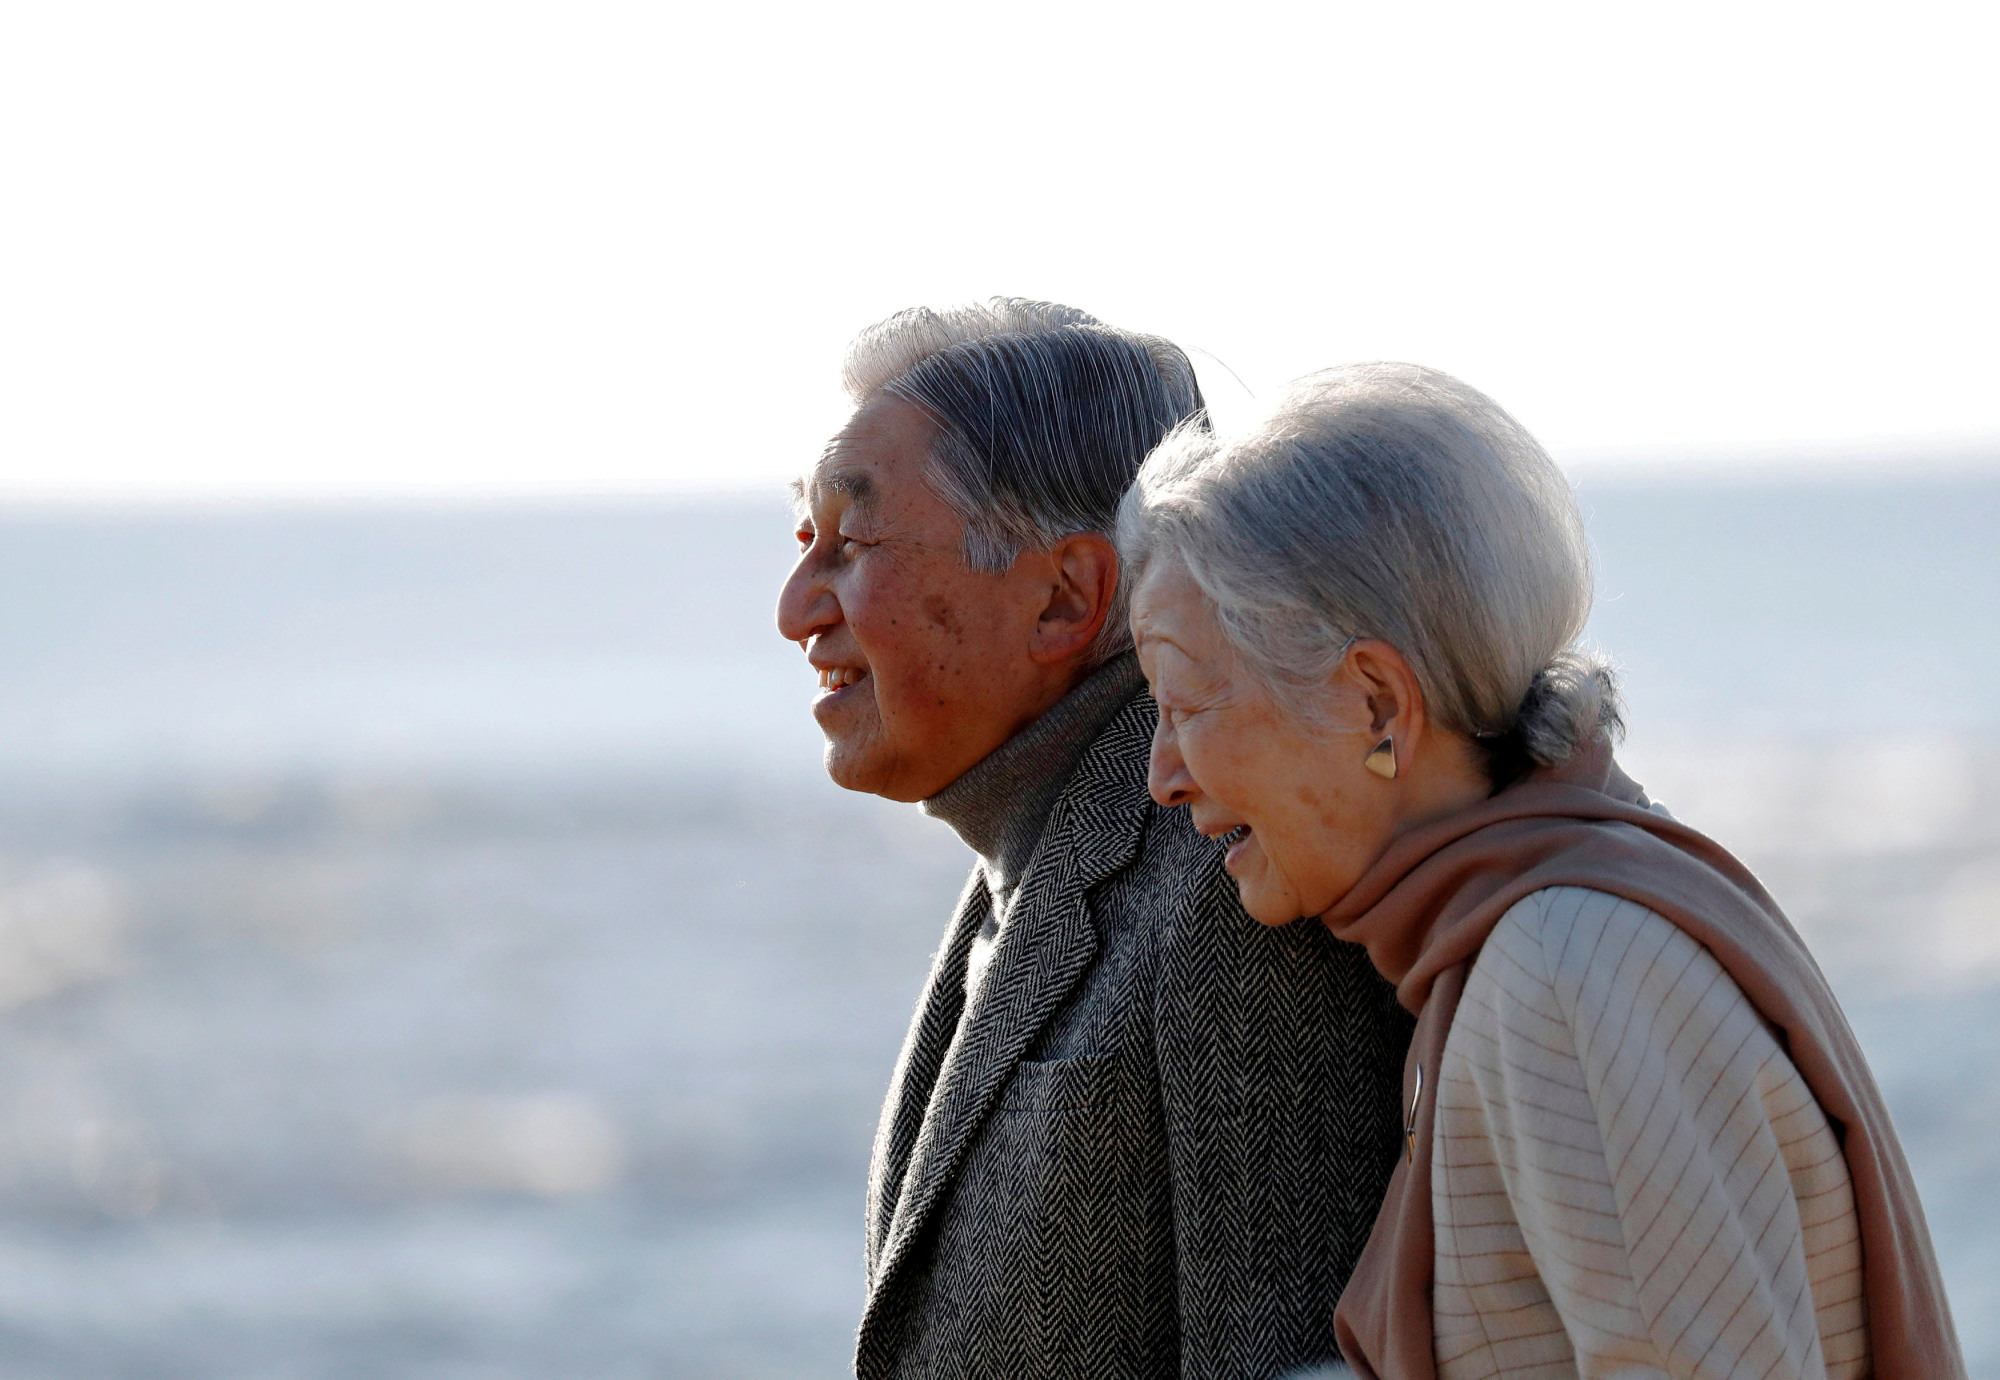 Emperor Akihito and Empress Michiko stroll on a beach near their Imperial villa, where they were staying for the Emperor's recuperation, in Hayama, Kanagawa Prefecture, on Jan. 21. | REUTERS